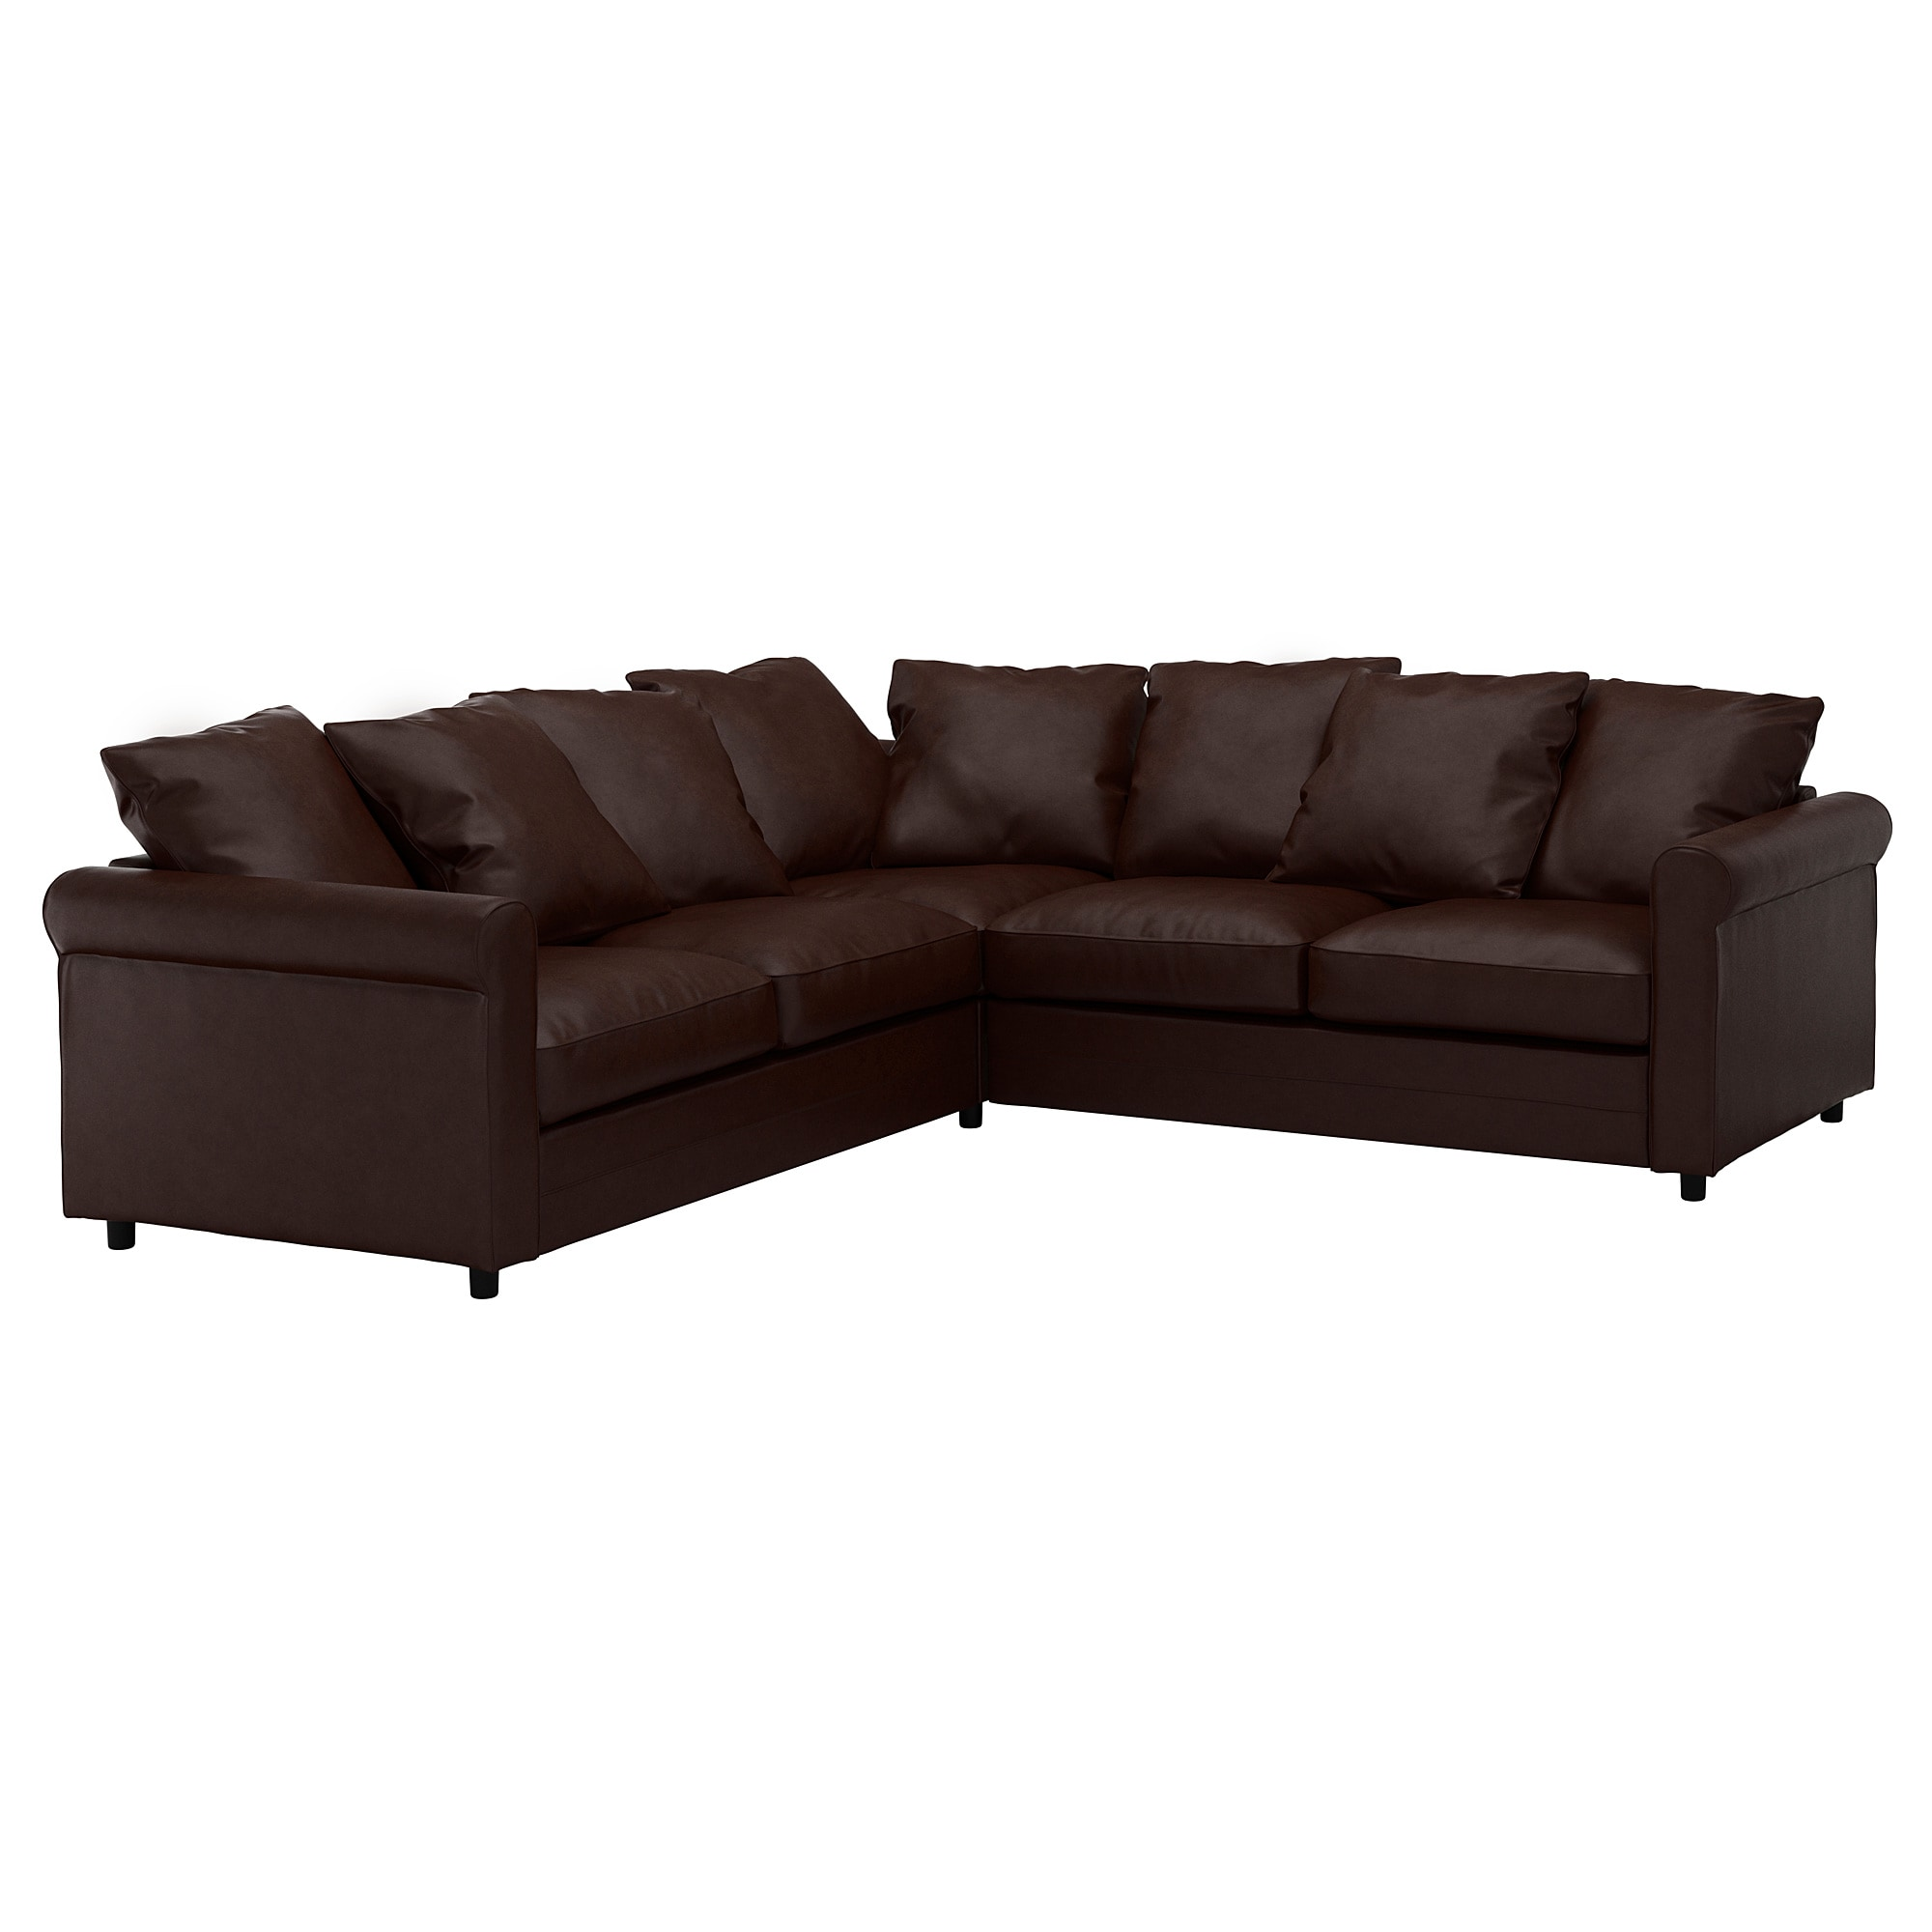 IKEA GRÖNLID corner sofa, 4-seat 10 year guarantee. Read about the terms